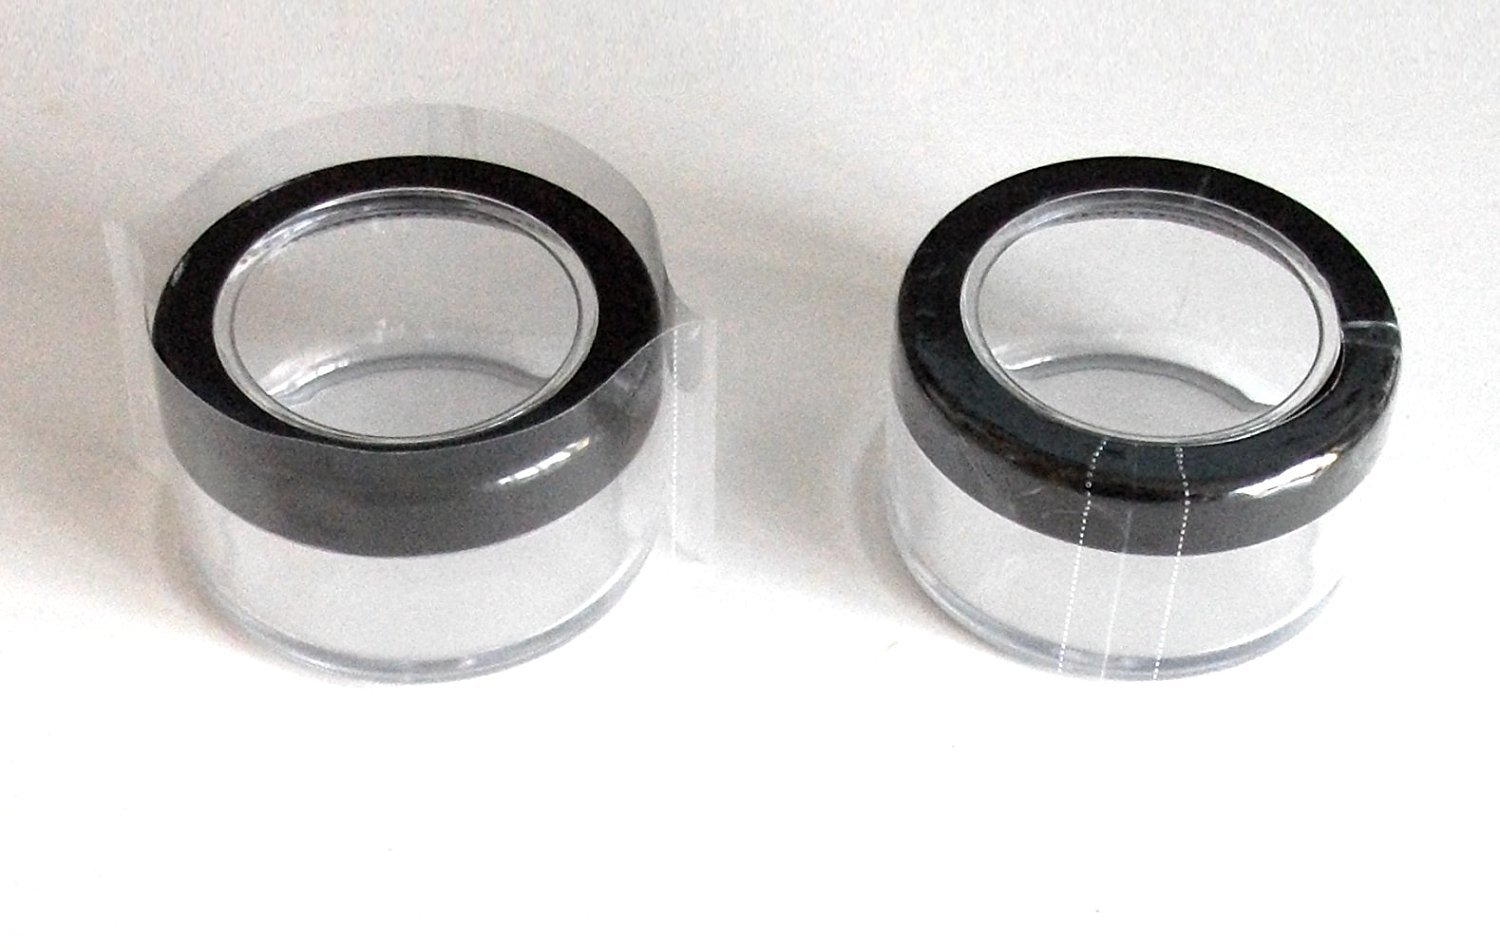 Clear Plastic PERFORATED Shrink Bands for Jar/Bottle Caps 4 SIZE CHOICES (Pack of 100) 10ml Fits (33-38) mm Diameter JTshop